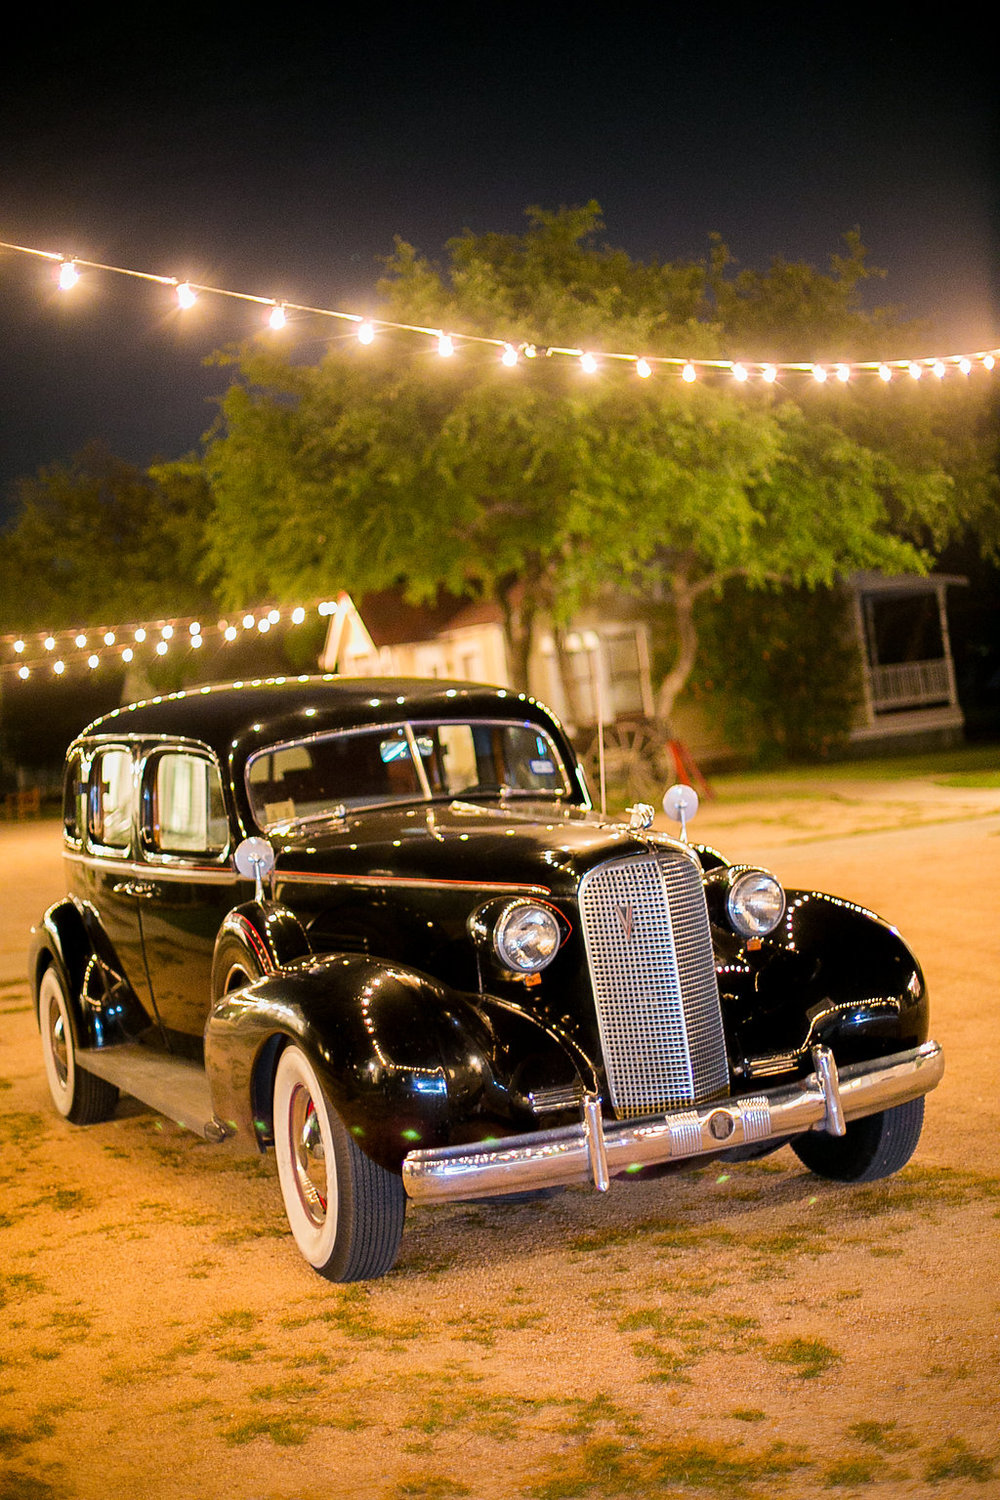 Vintage wedding getaway car 1937 black cadillac